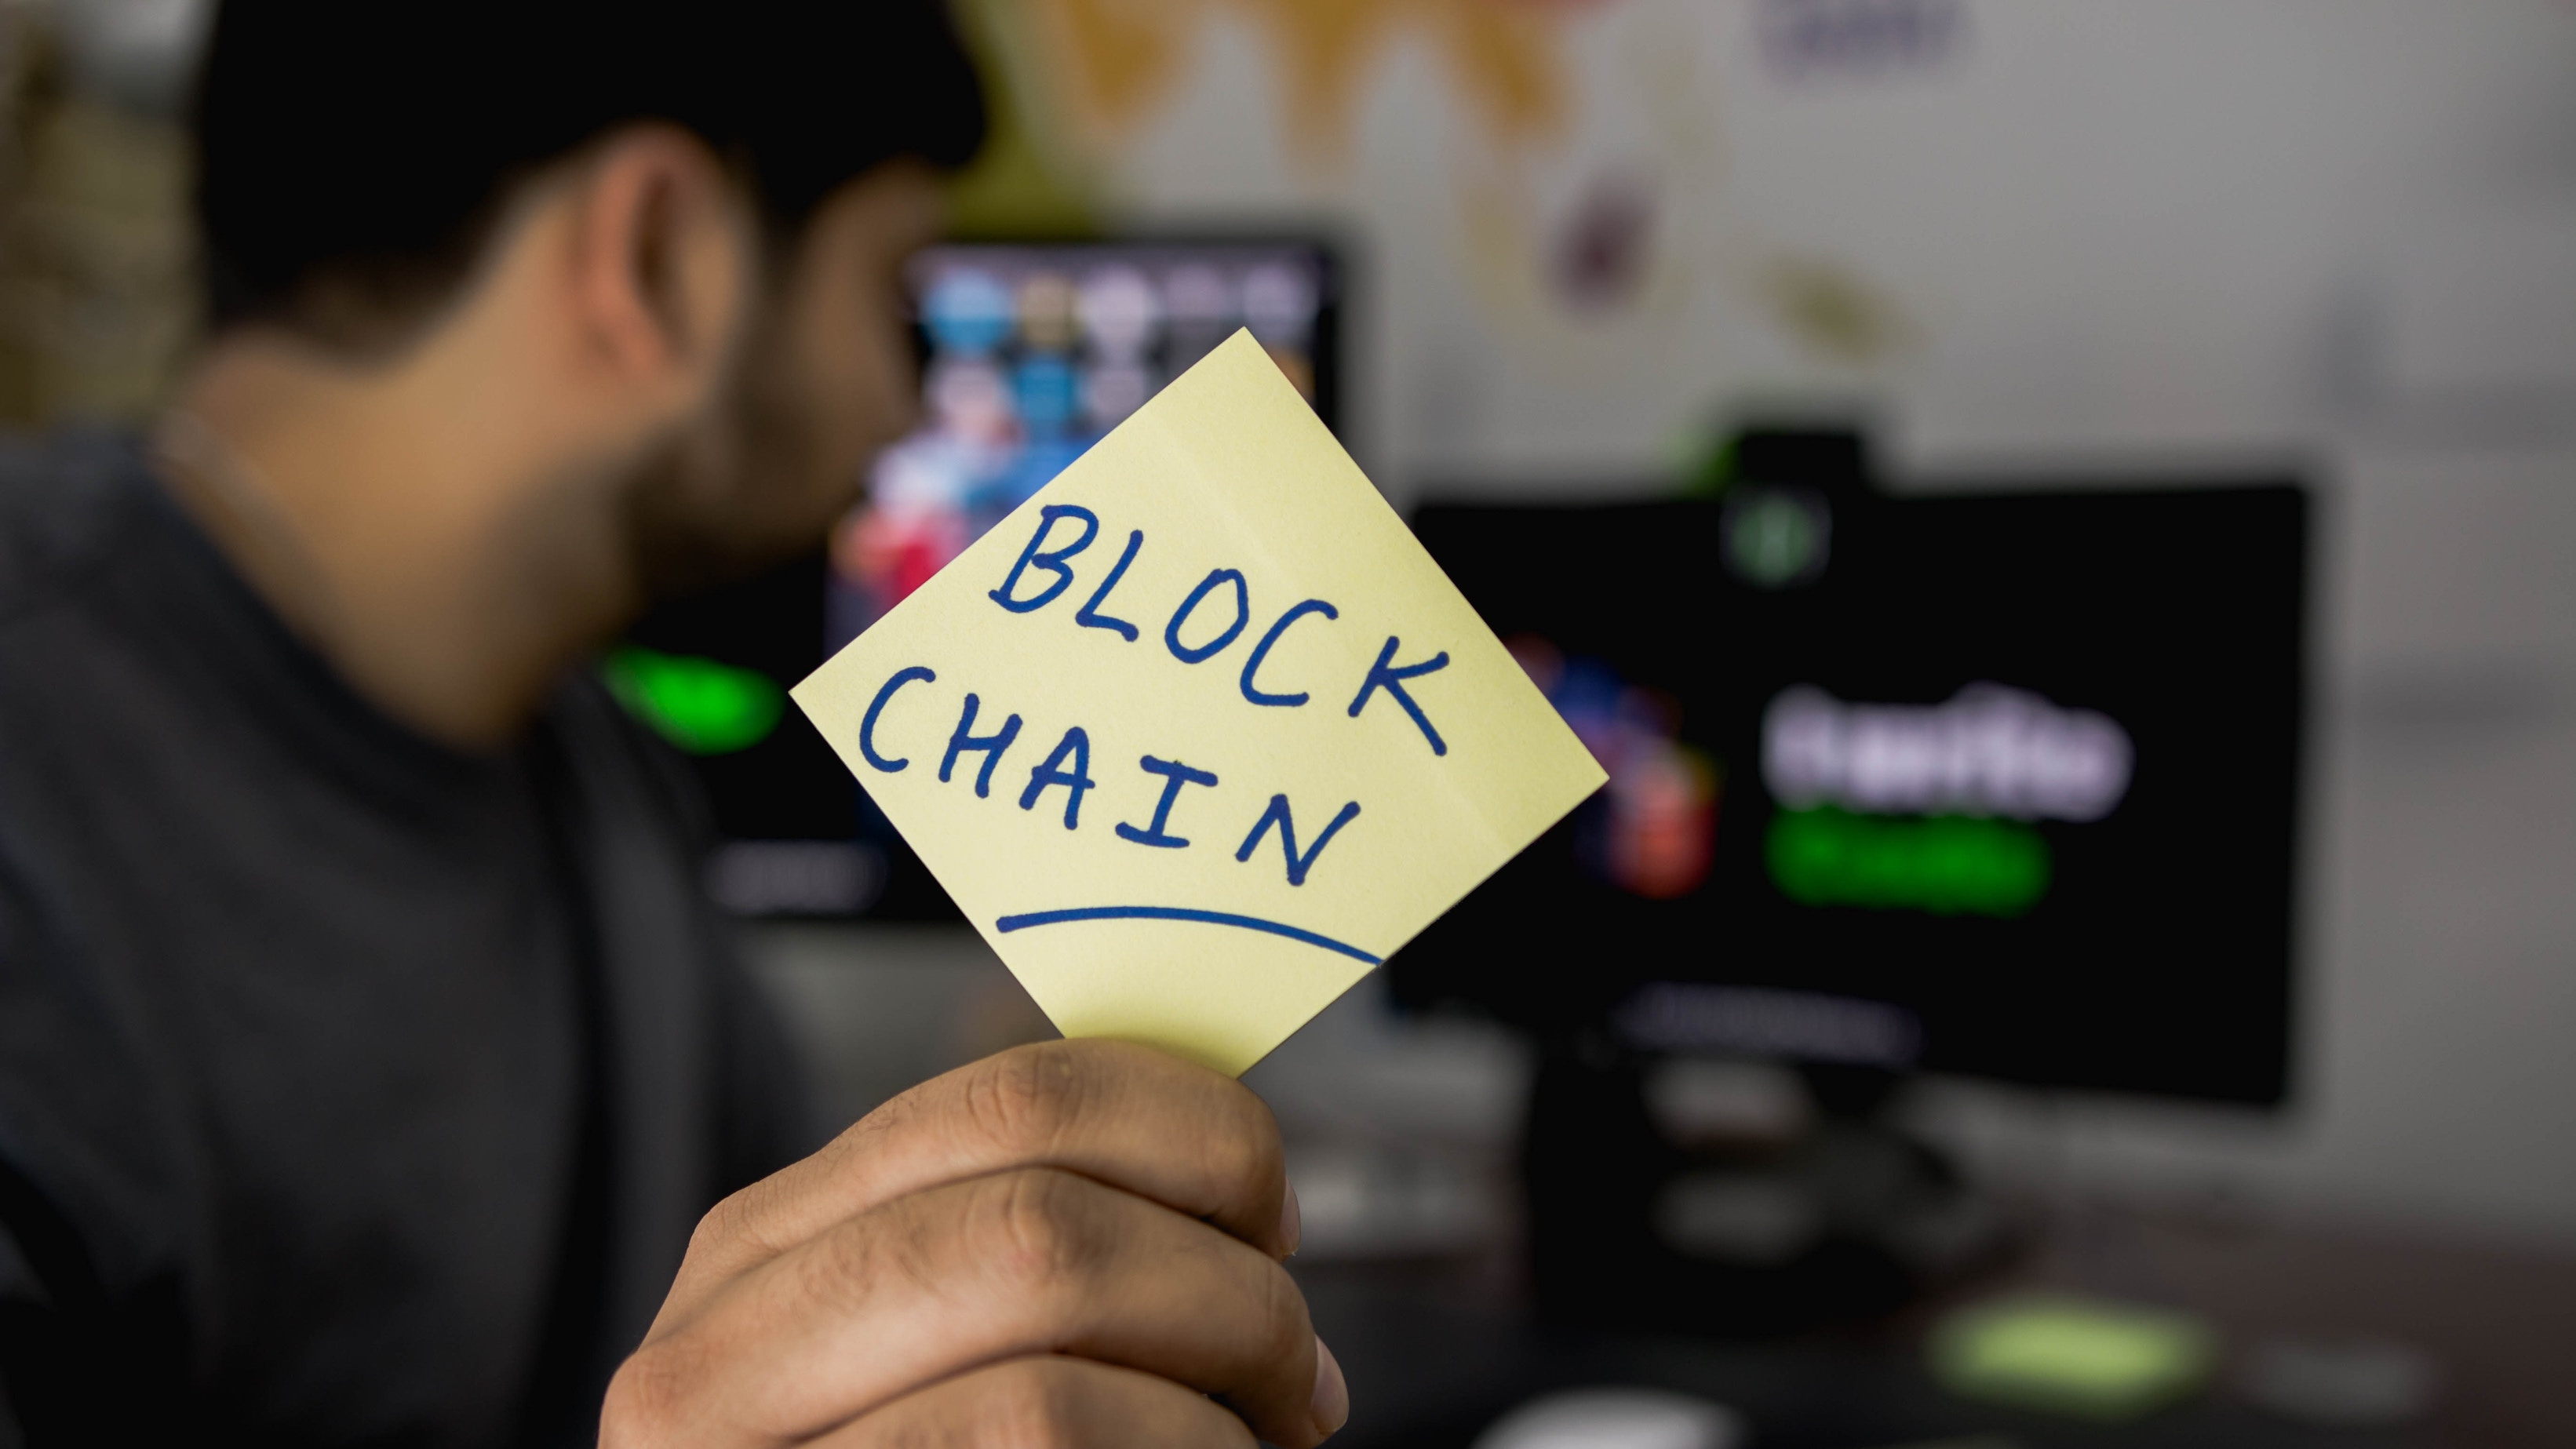 Future Of Blockchain Technology: What To Expect